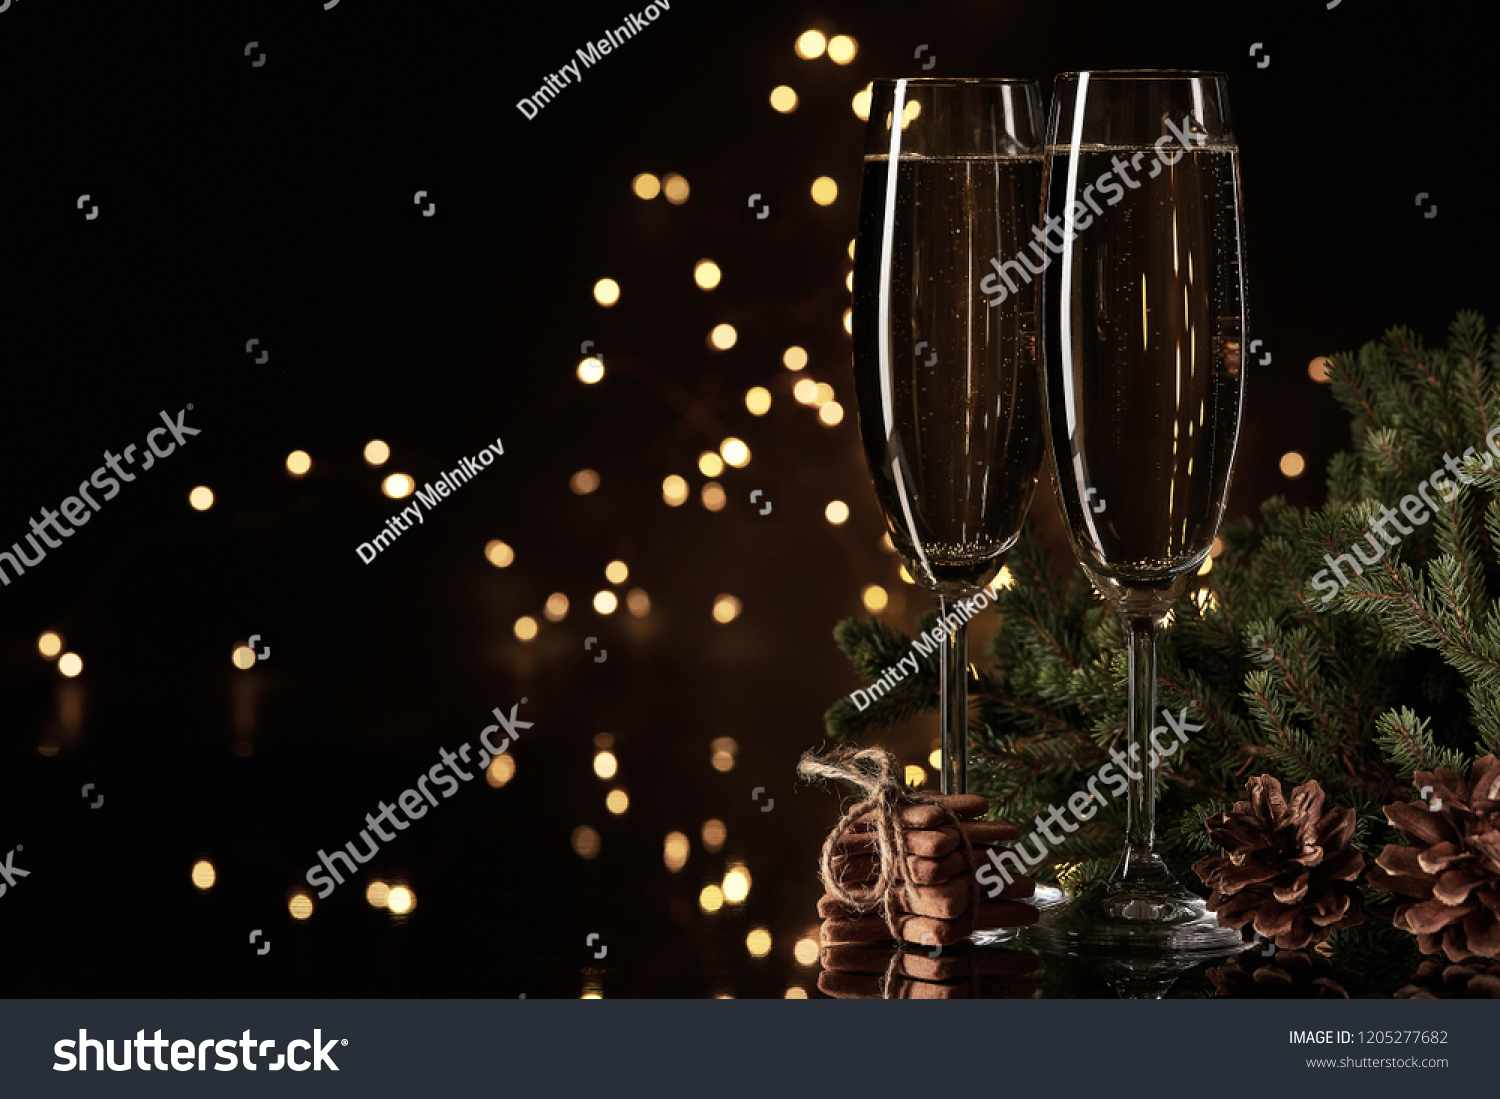 Two glasses with champange, fir tree branch and gingerbread cookies on a dark background with LED lights garland. New year and Christmas. #1205277682